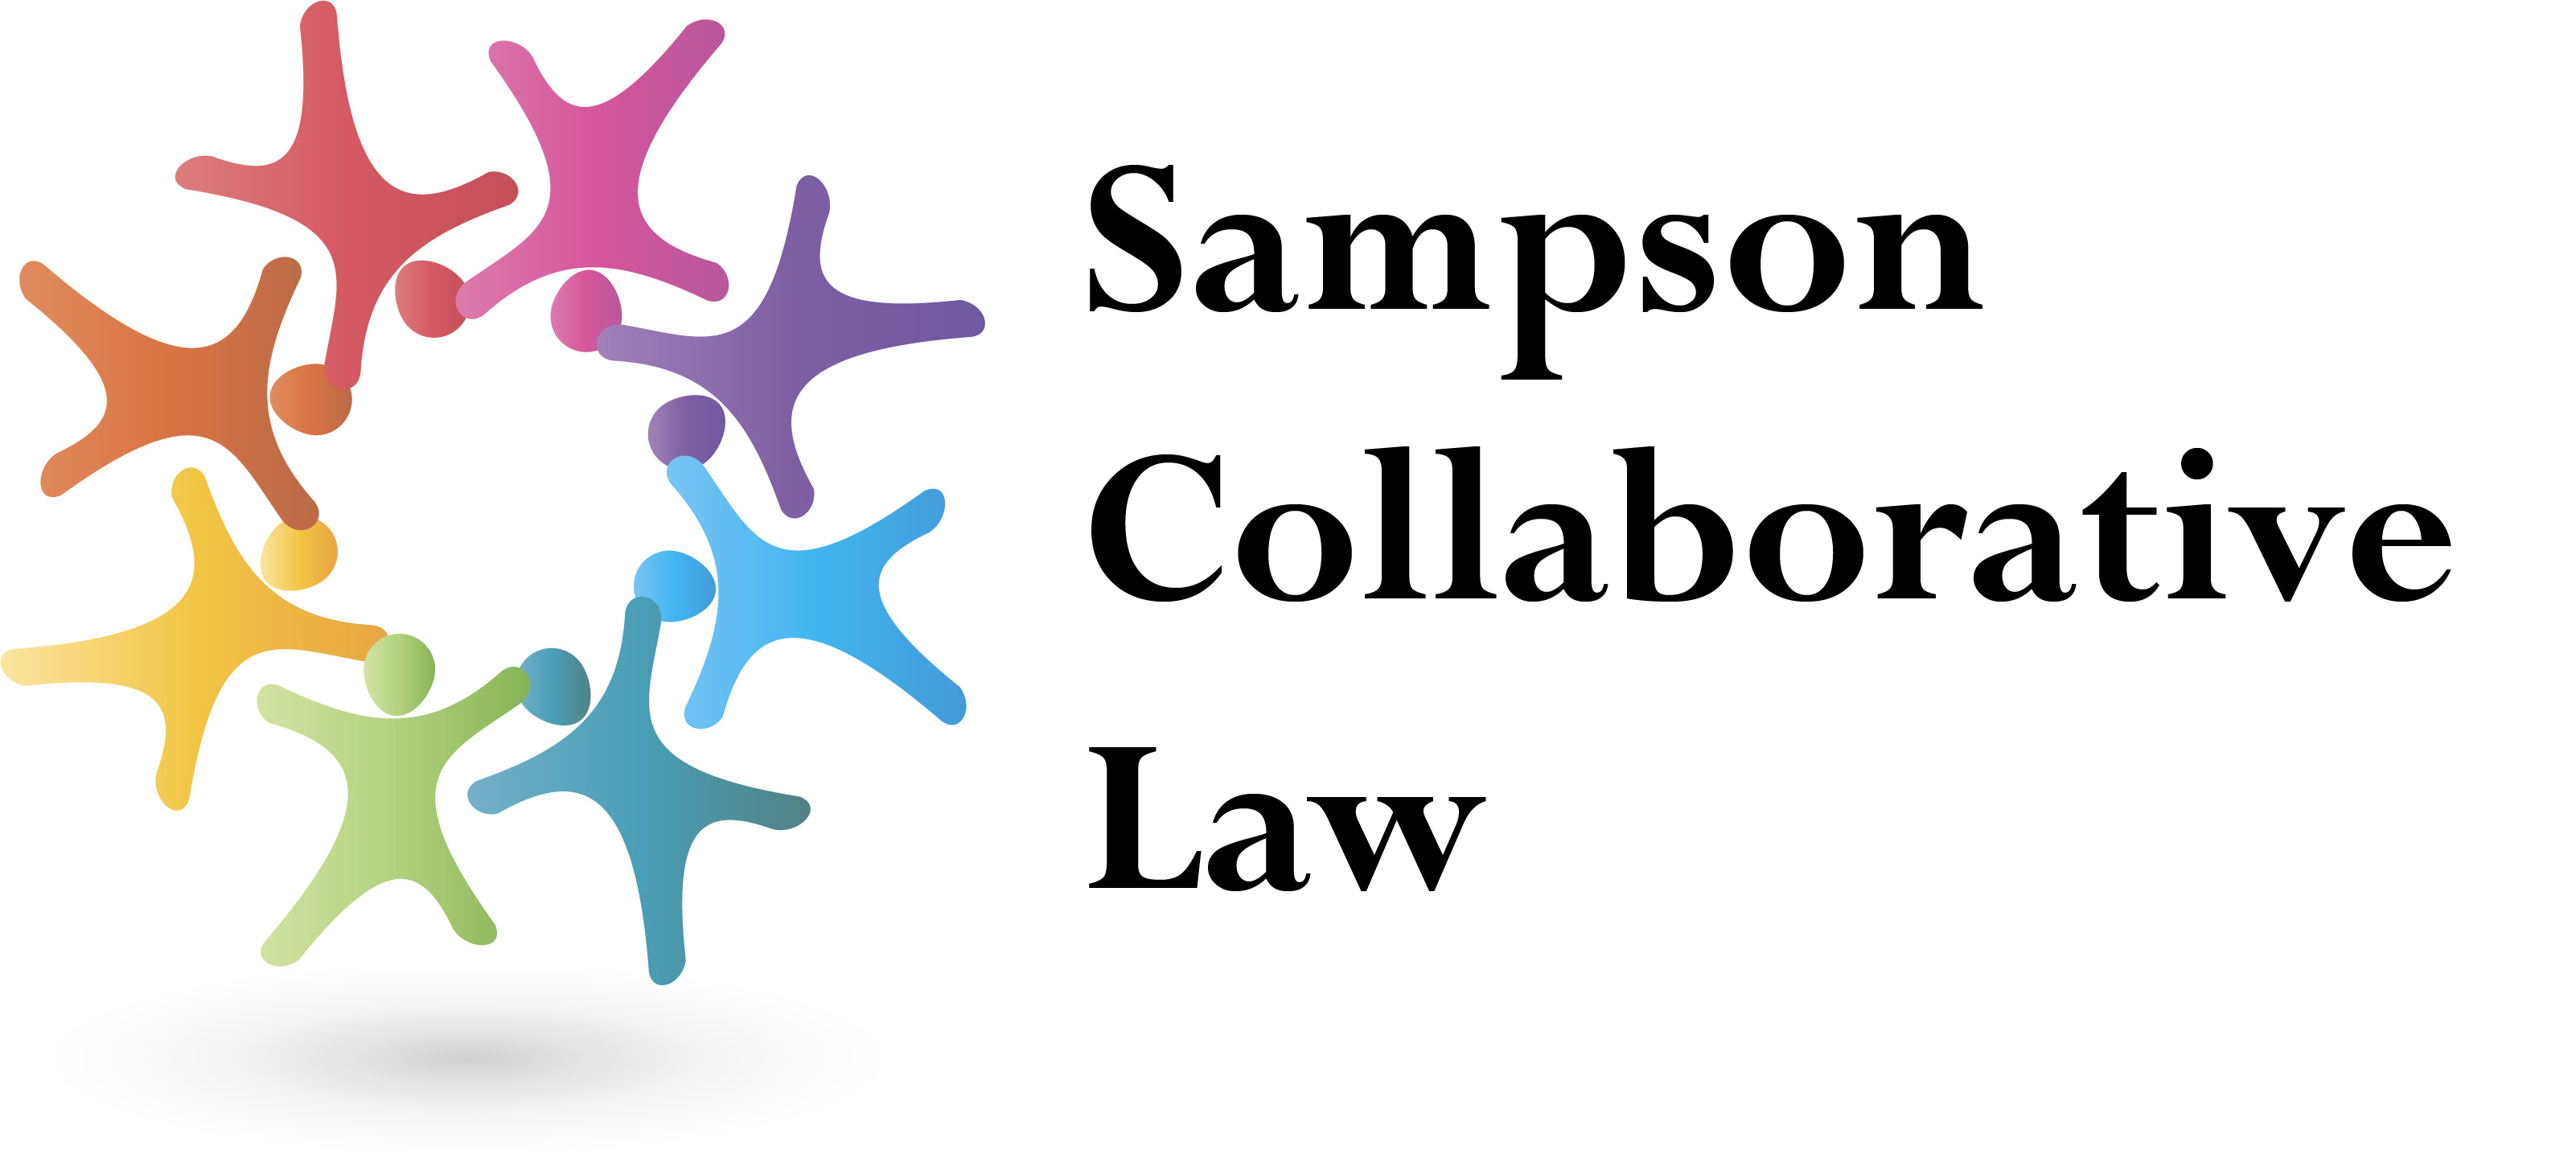 Sampson Logo with shadow 300 resolution perpetua font